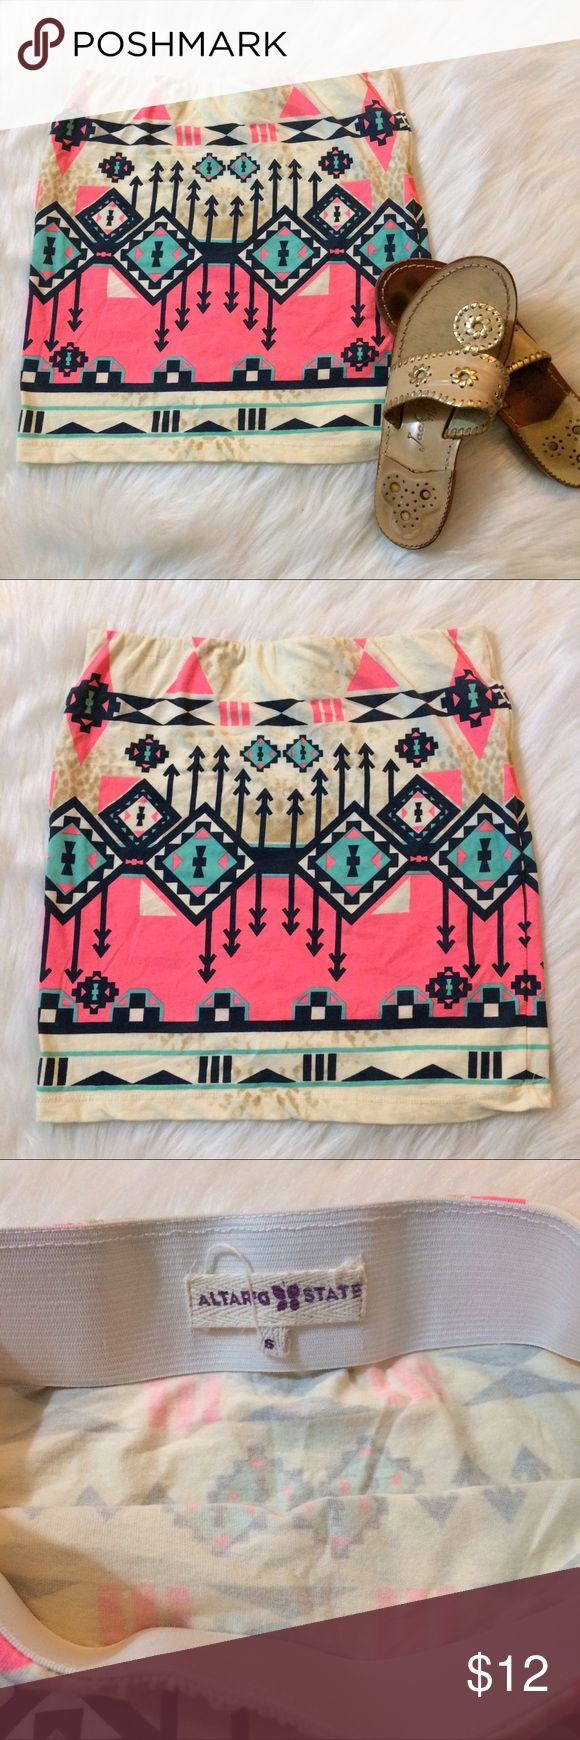 Altar'd state Aztec print skirt Mini skirt, size small. Elastic waistband. Aztec print and in very good condition with no flaws. Altar'd State Skirts Mini